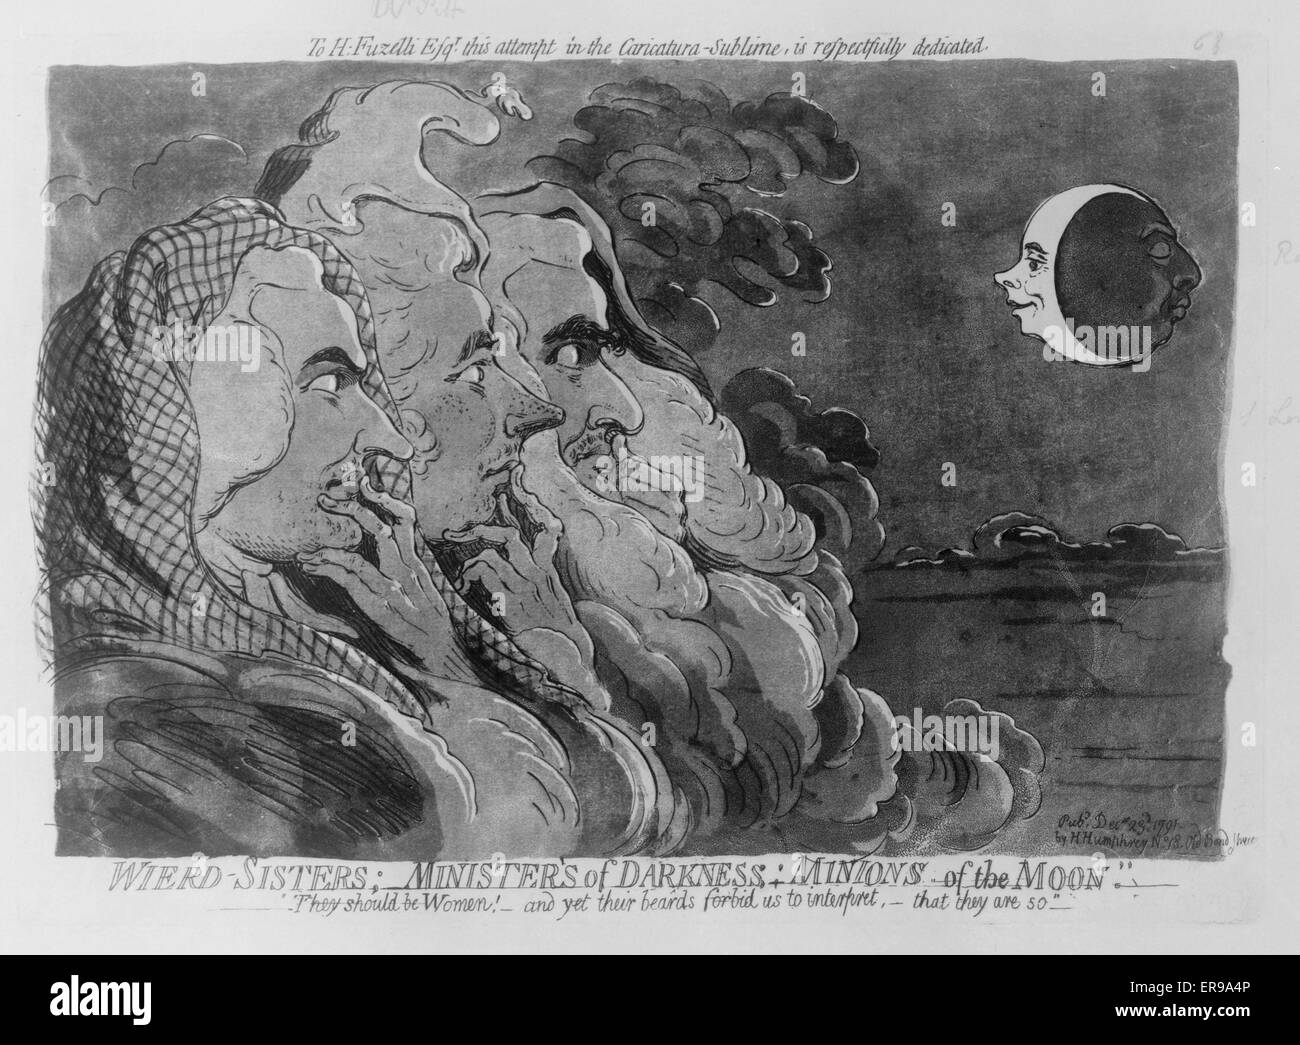 Wierd sisters; minister'ssic of darkness; minions of the moon. Prime Minister William Pitt, and subordinate - Stock Image